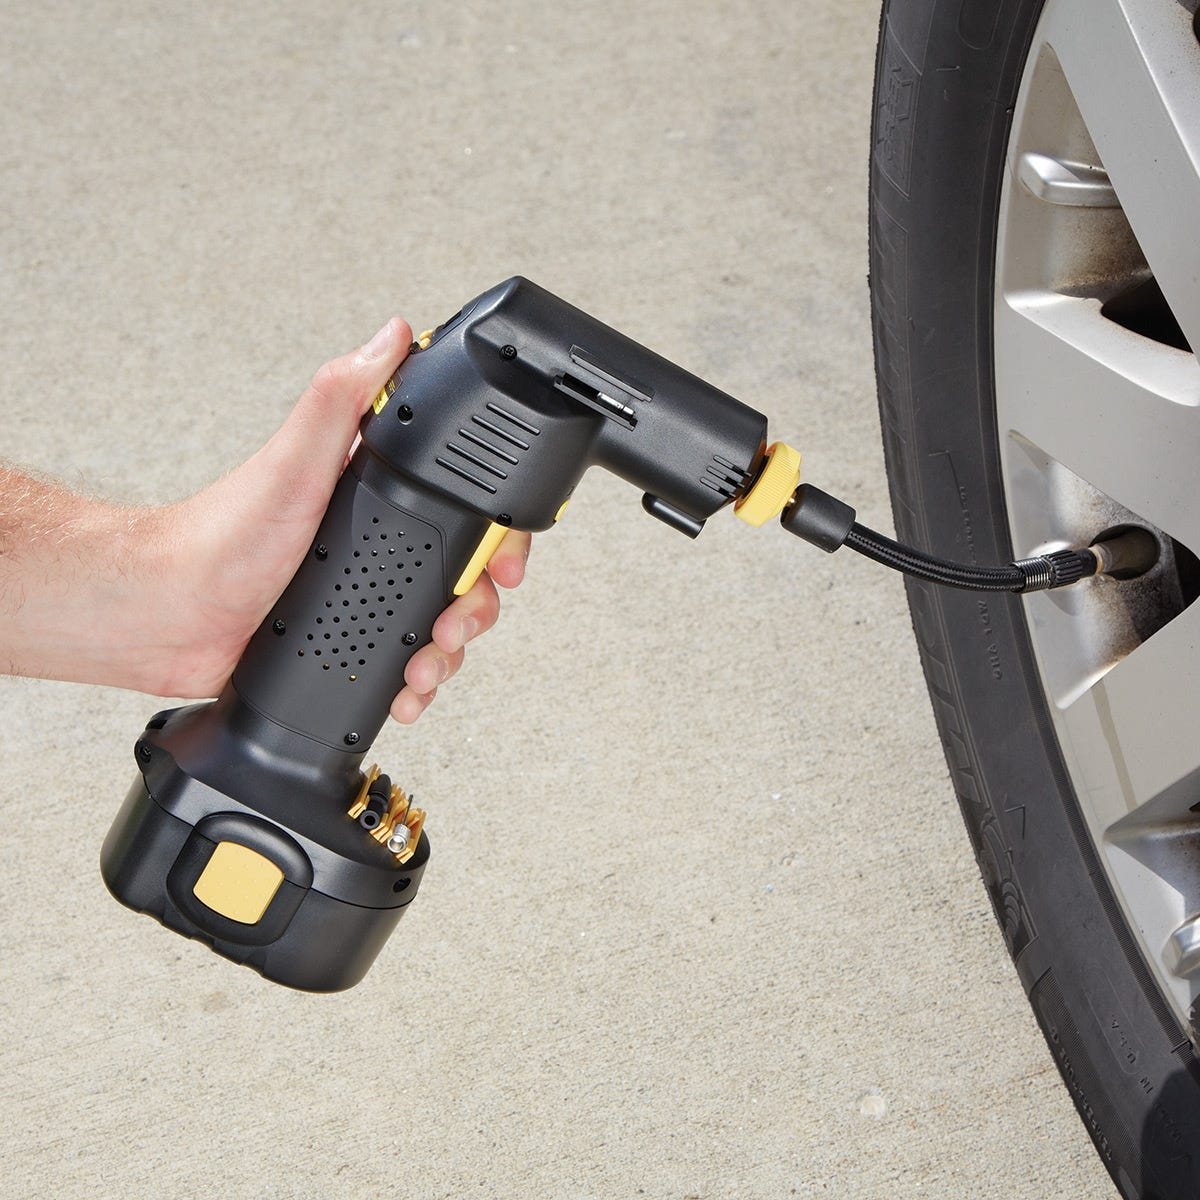 Rechargeable Airgun Cordless Air Compressor From Sporty